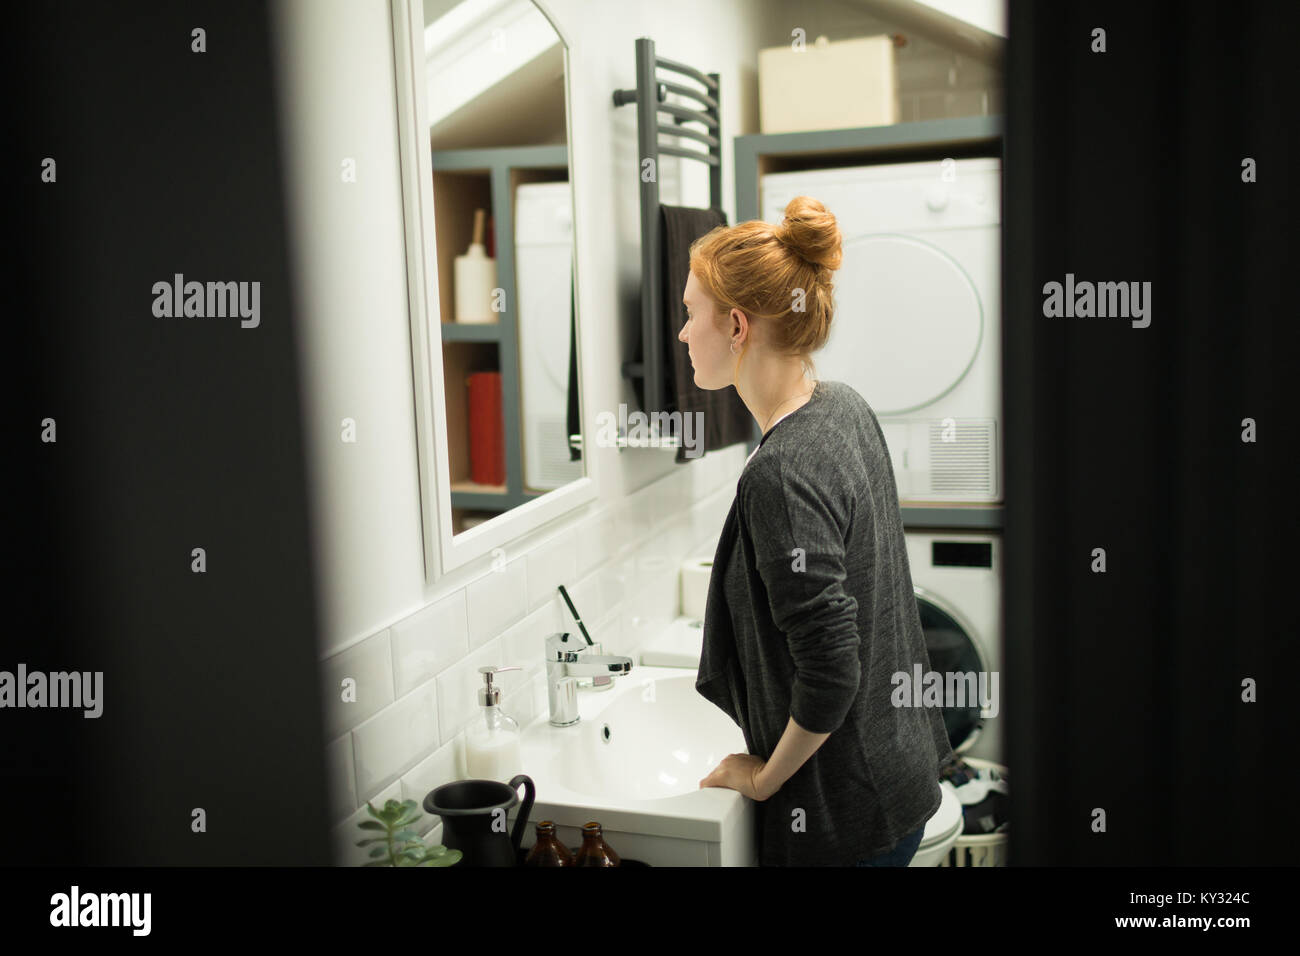 Young woman looking in bathroom mirror - Stock Image